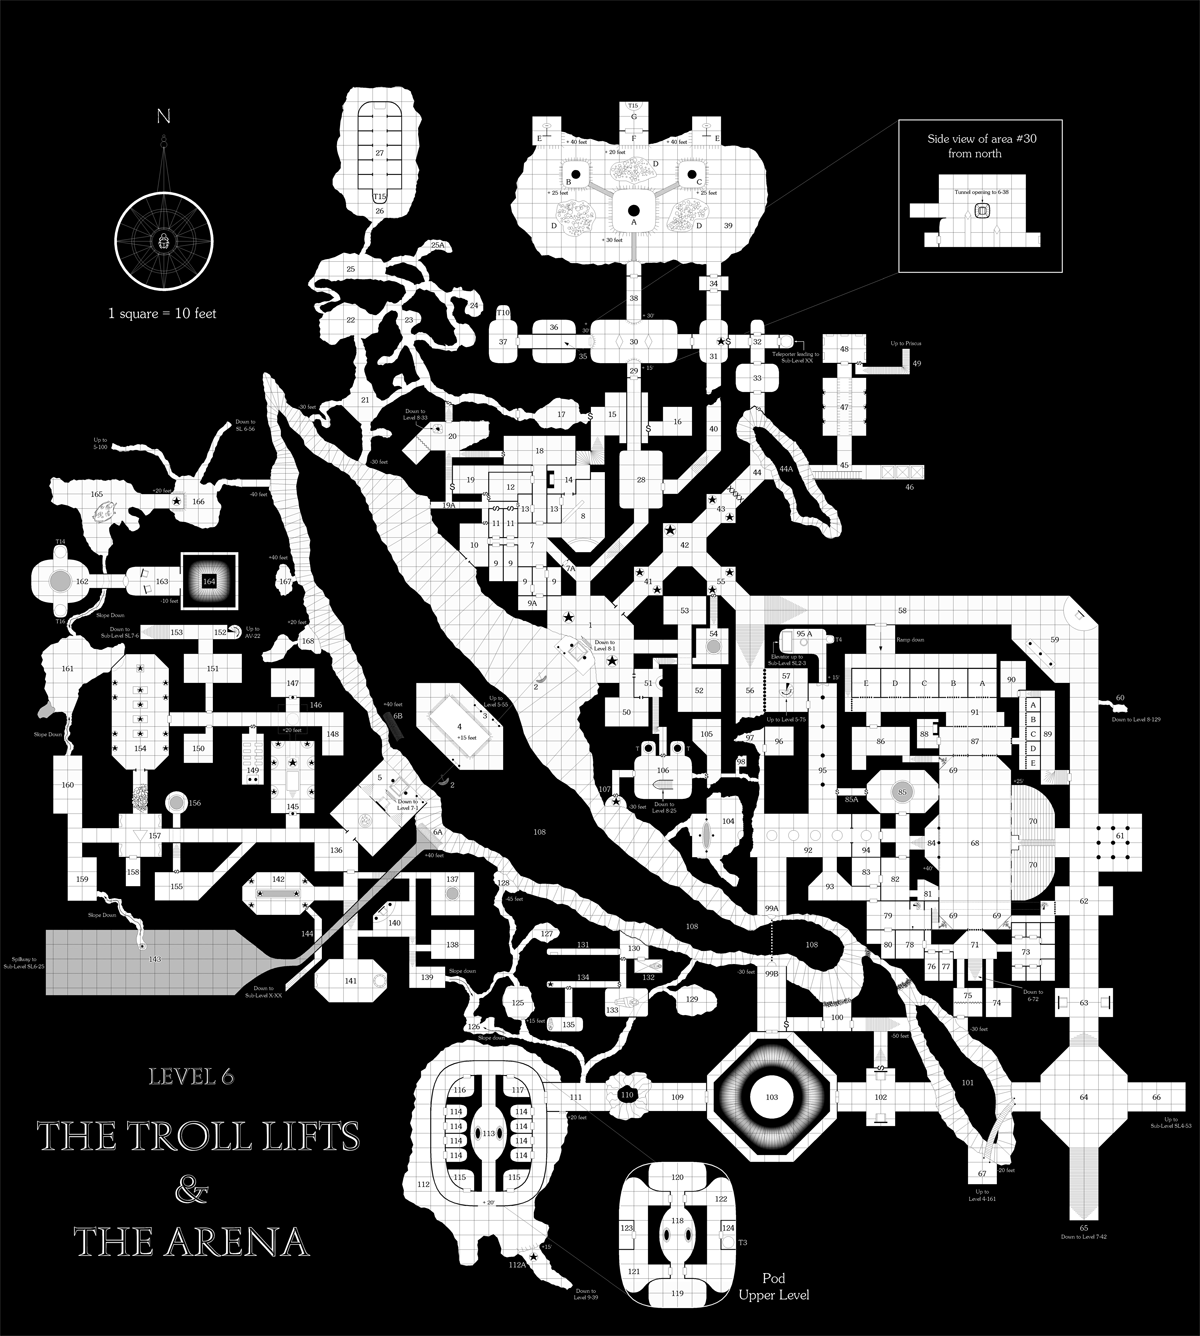 Level 6 - The Troll Lifts & The Arena for blog.png